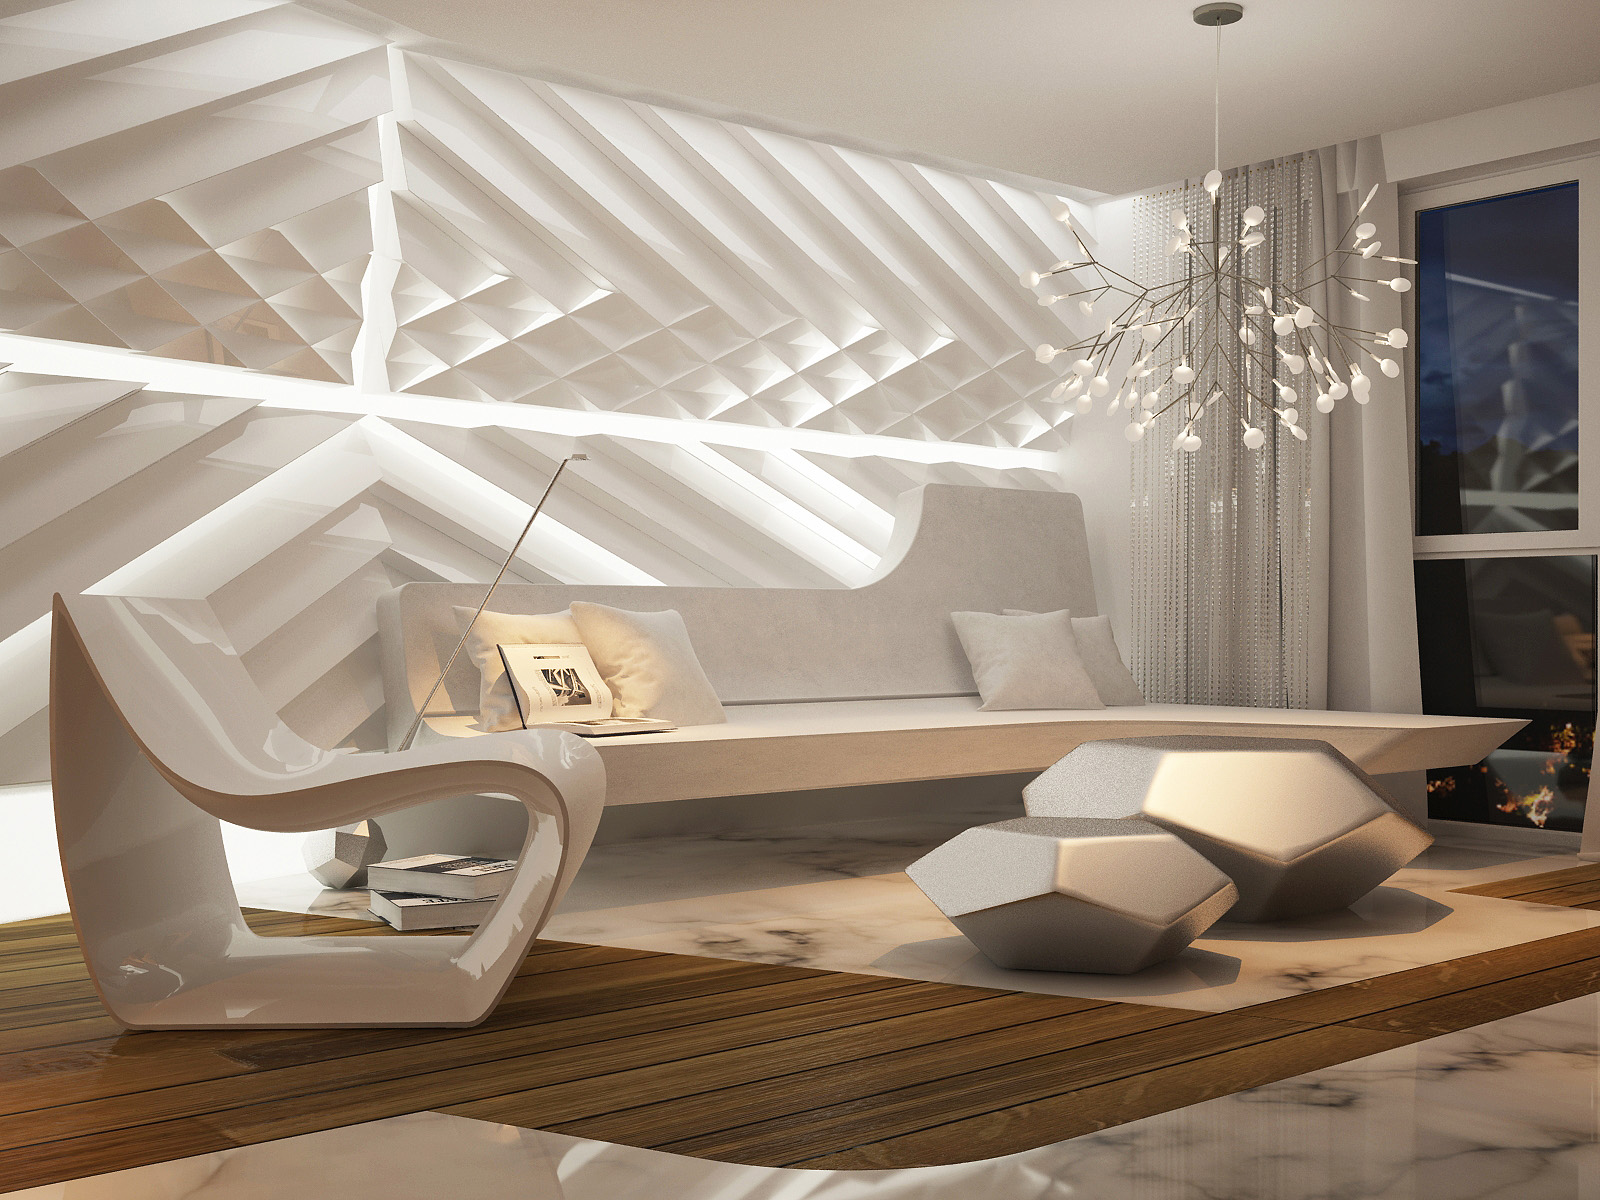 Futuristic interior design for Interior wall design ideas